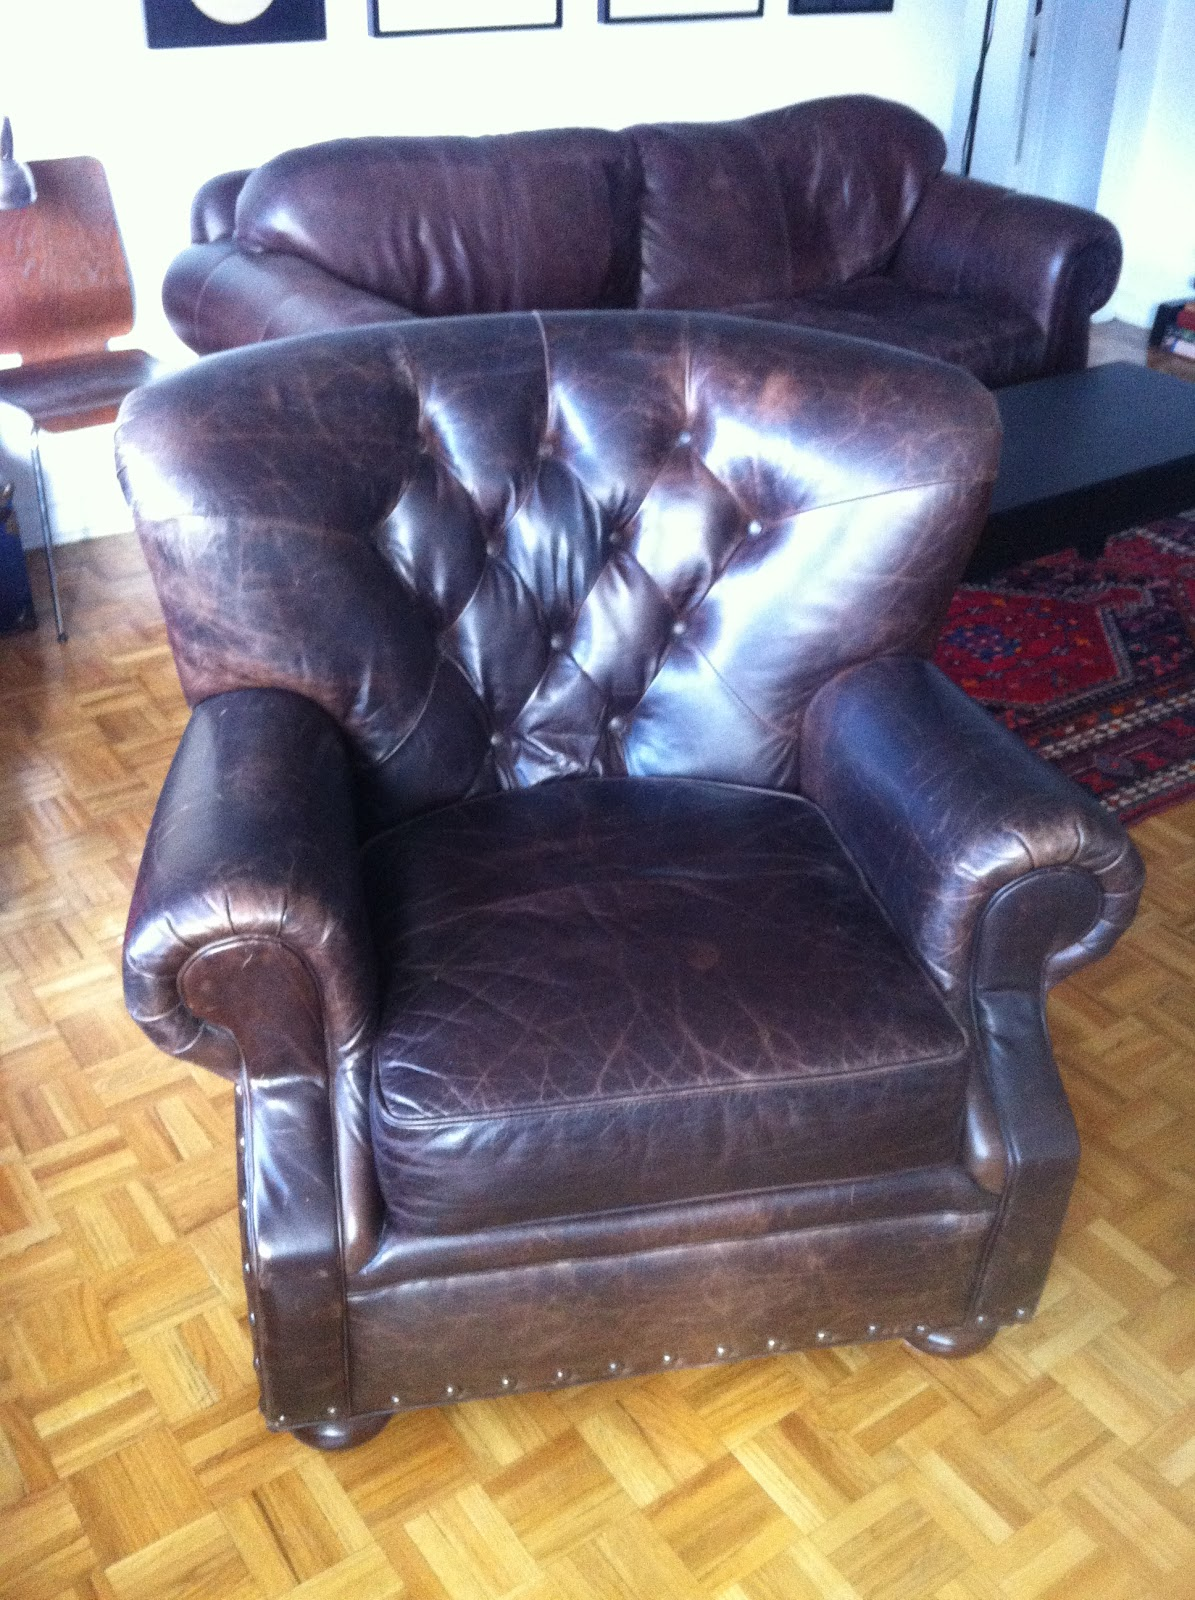 Thrifted-Armchair.jpg